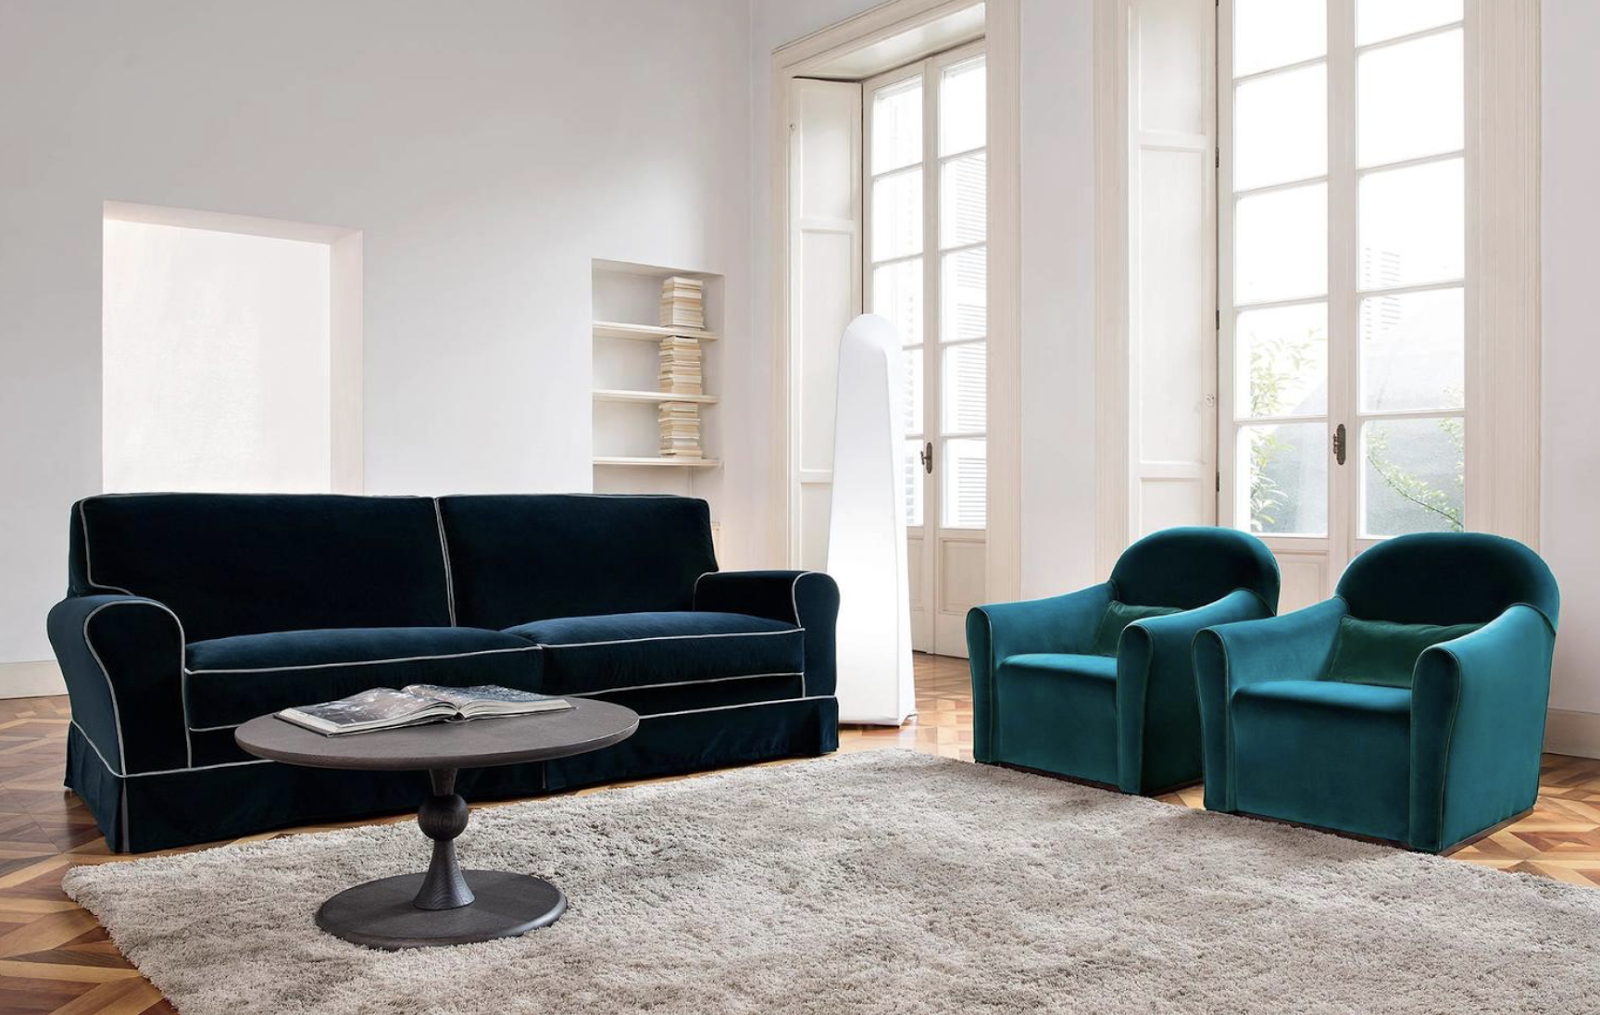 Designer Sofa Furniture Cleaning Houston Momentoitalia Italian Blog An